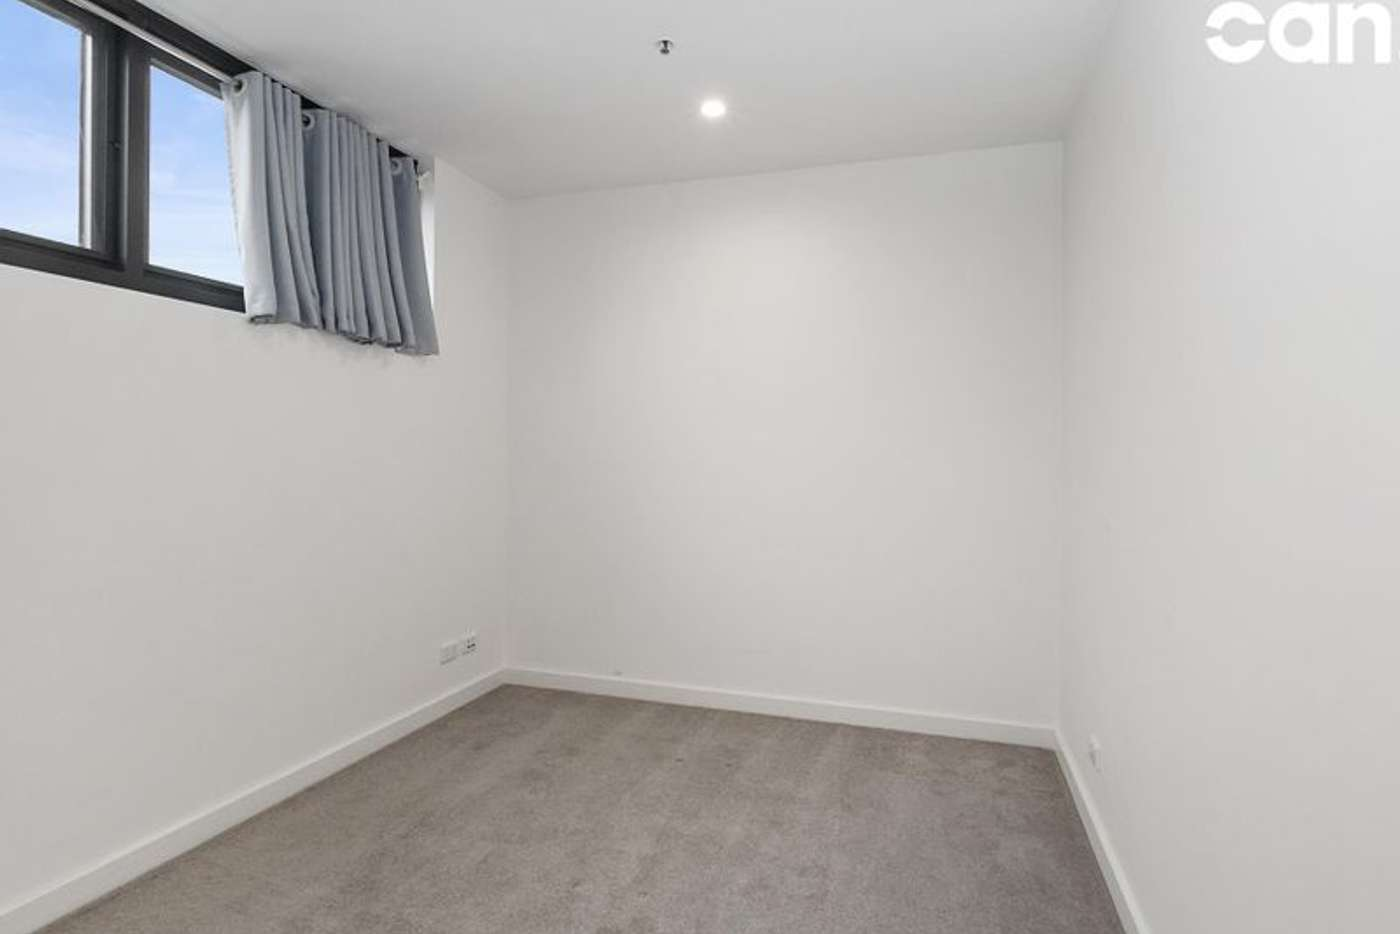 Sixth view of Homely apartment listing, 211/16 Bent Street, Bentleigh VIC 3204